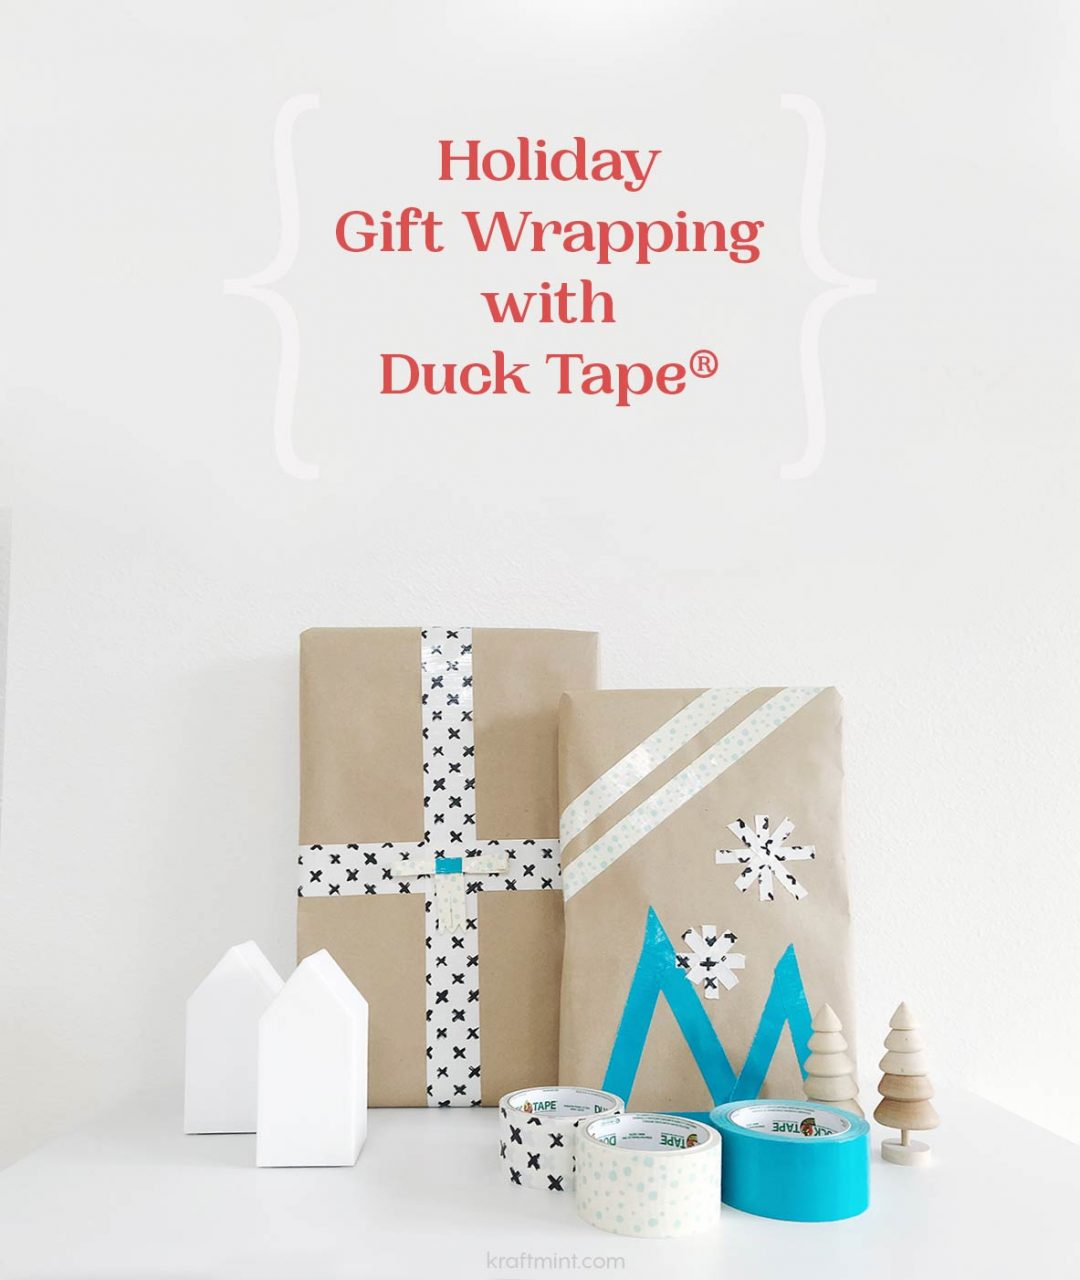 holidaywrapping_with_ducktape_hero_final_v2